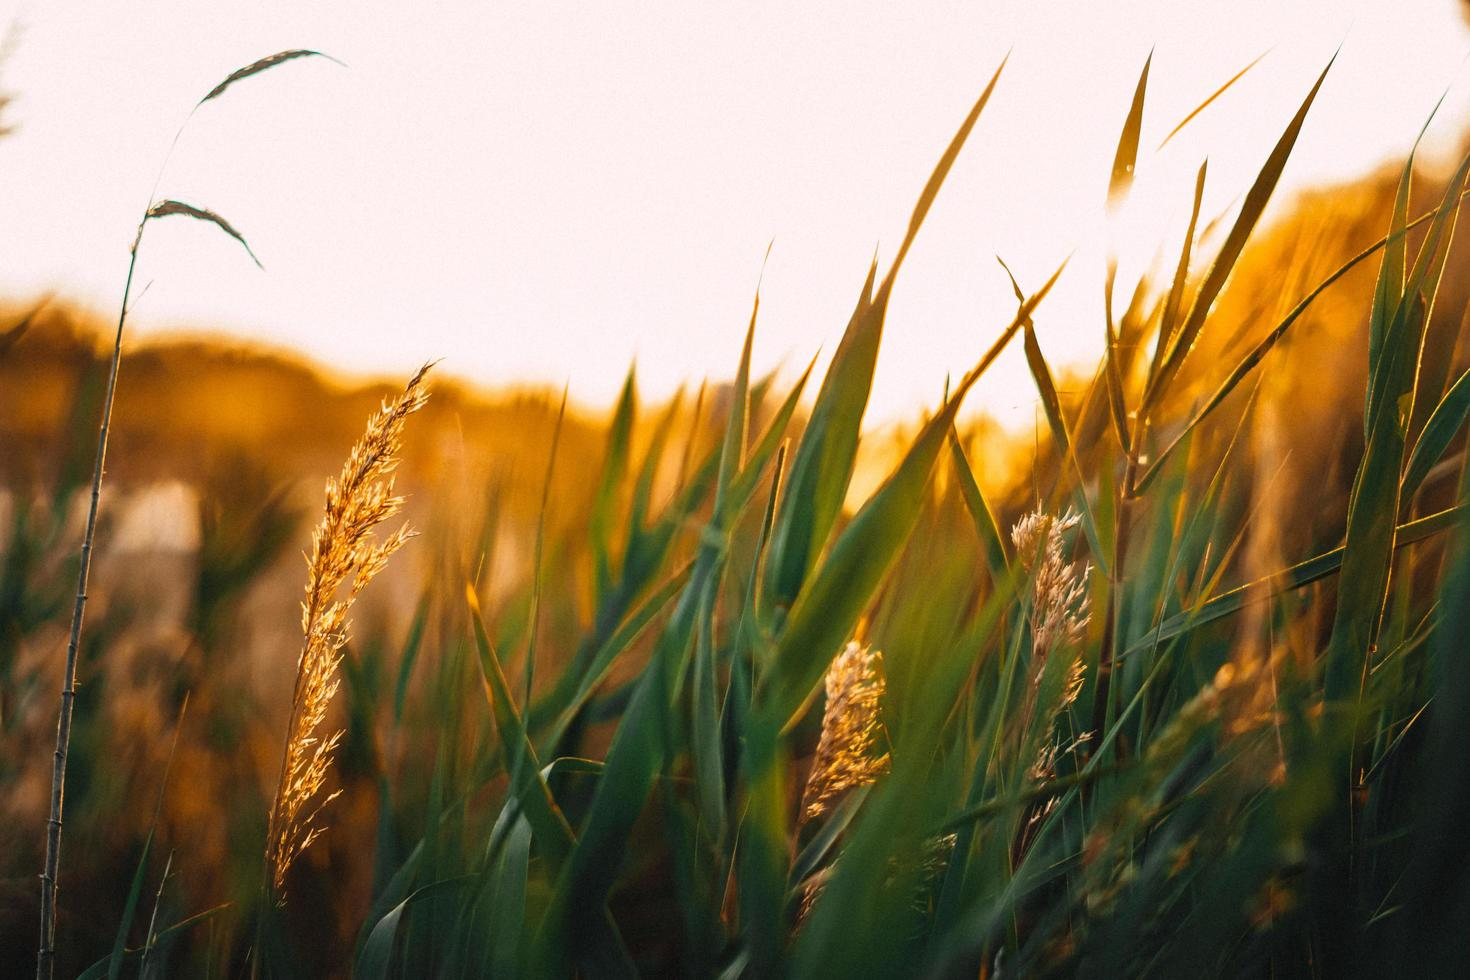 Wheat field at golden hour photo